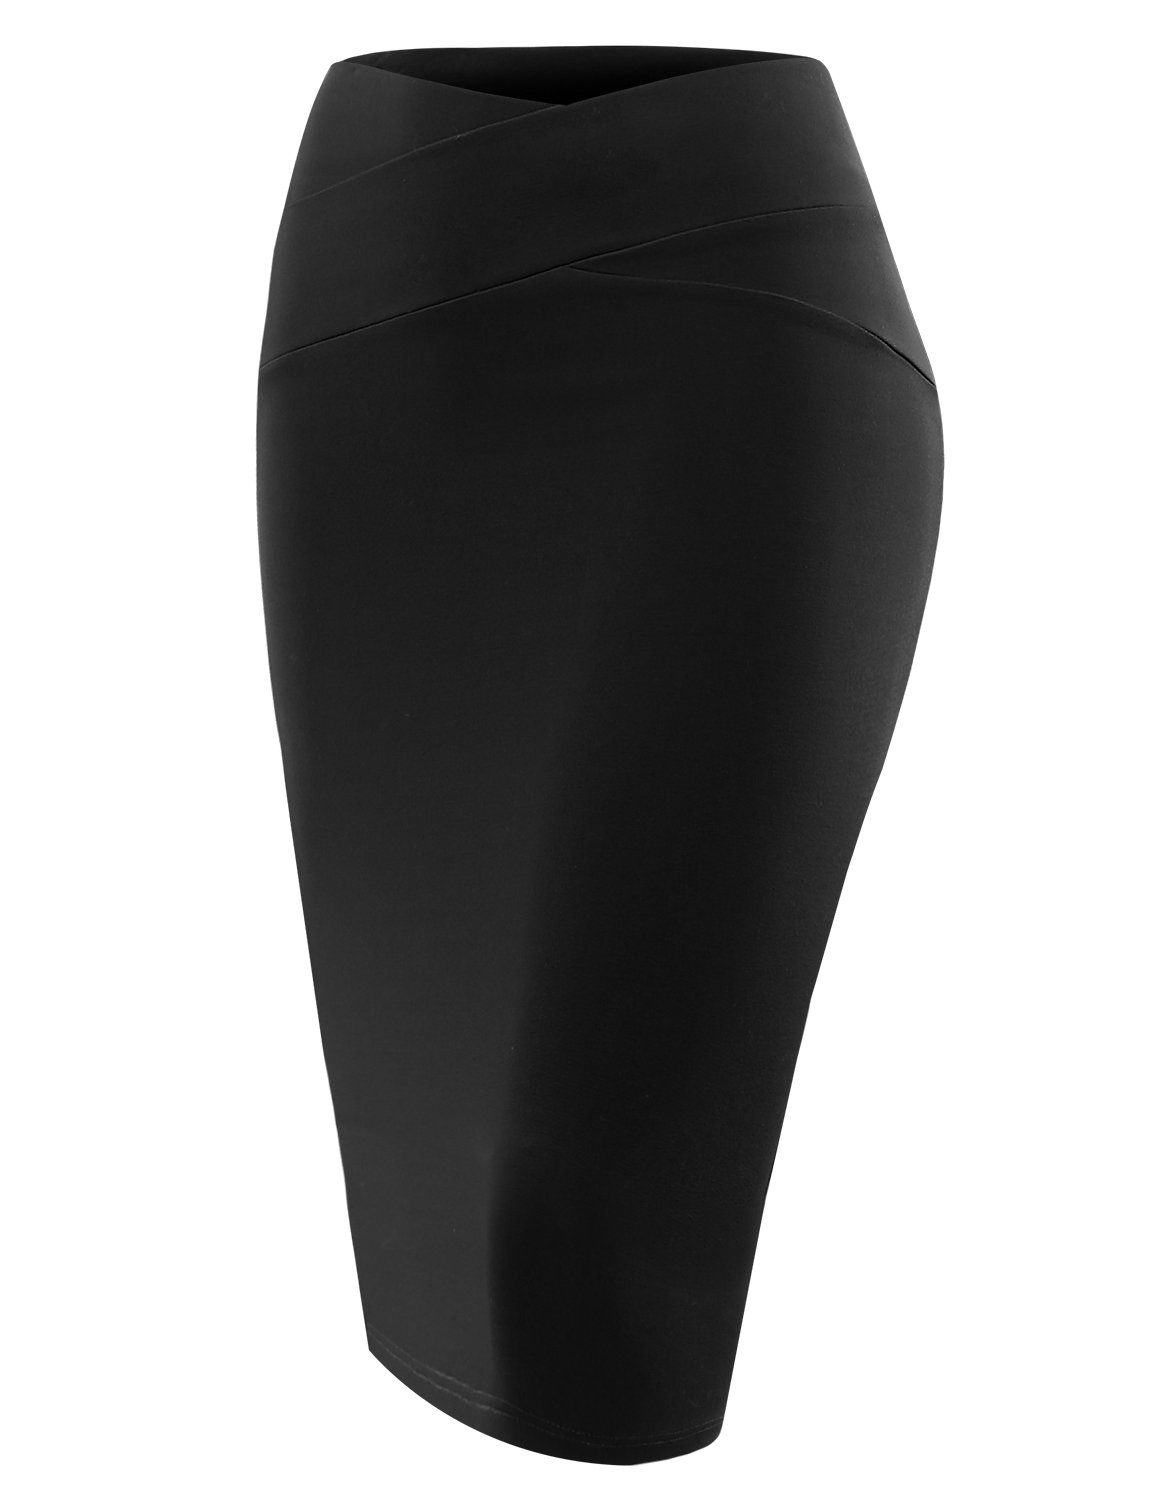 ALL FOR YOU Women's Slim Fit Front Detailed Pencil Skirt Black Small